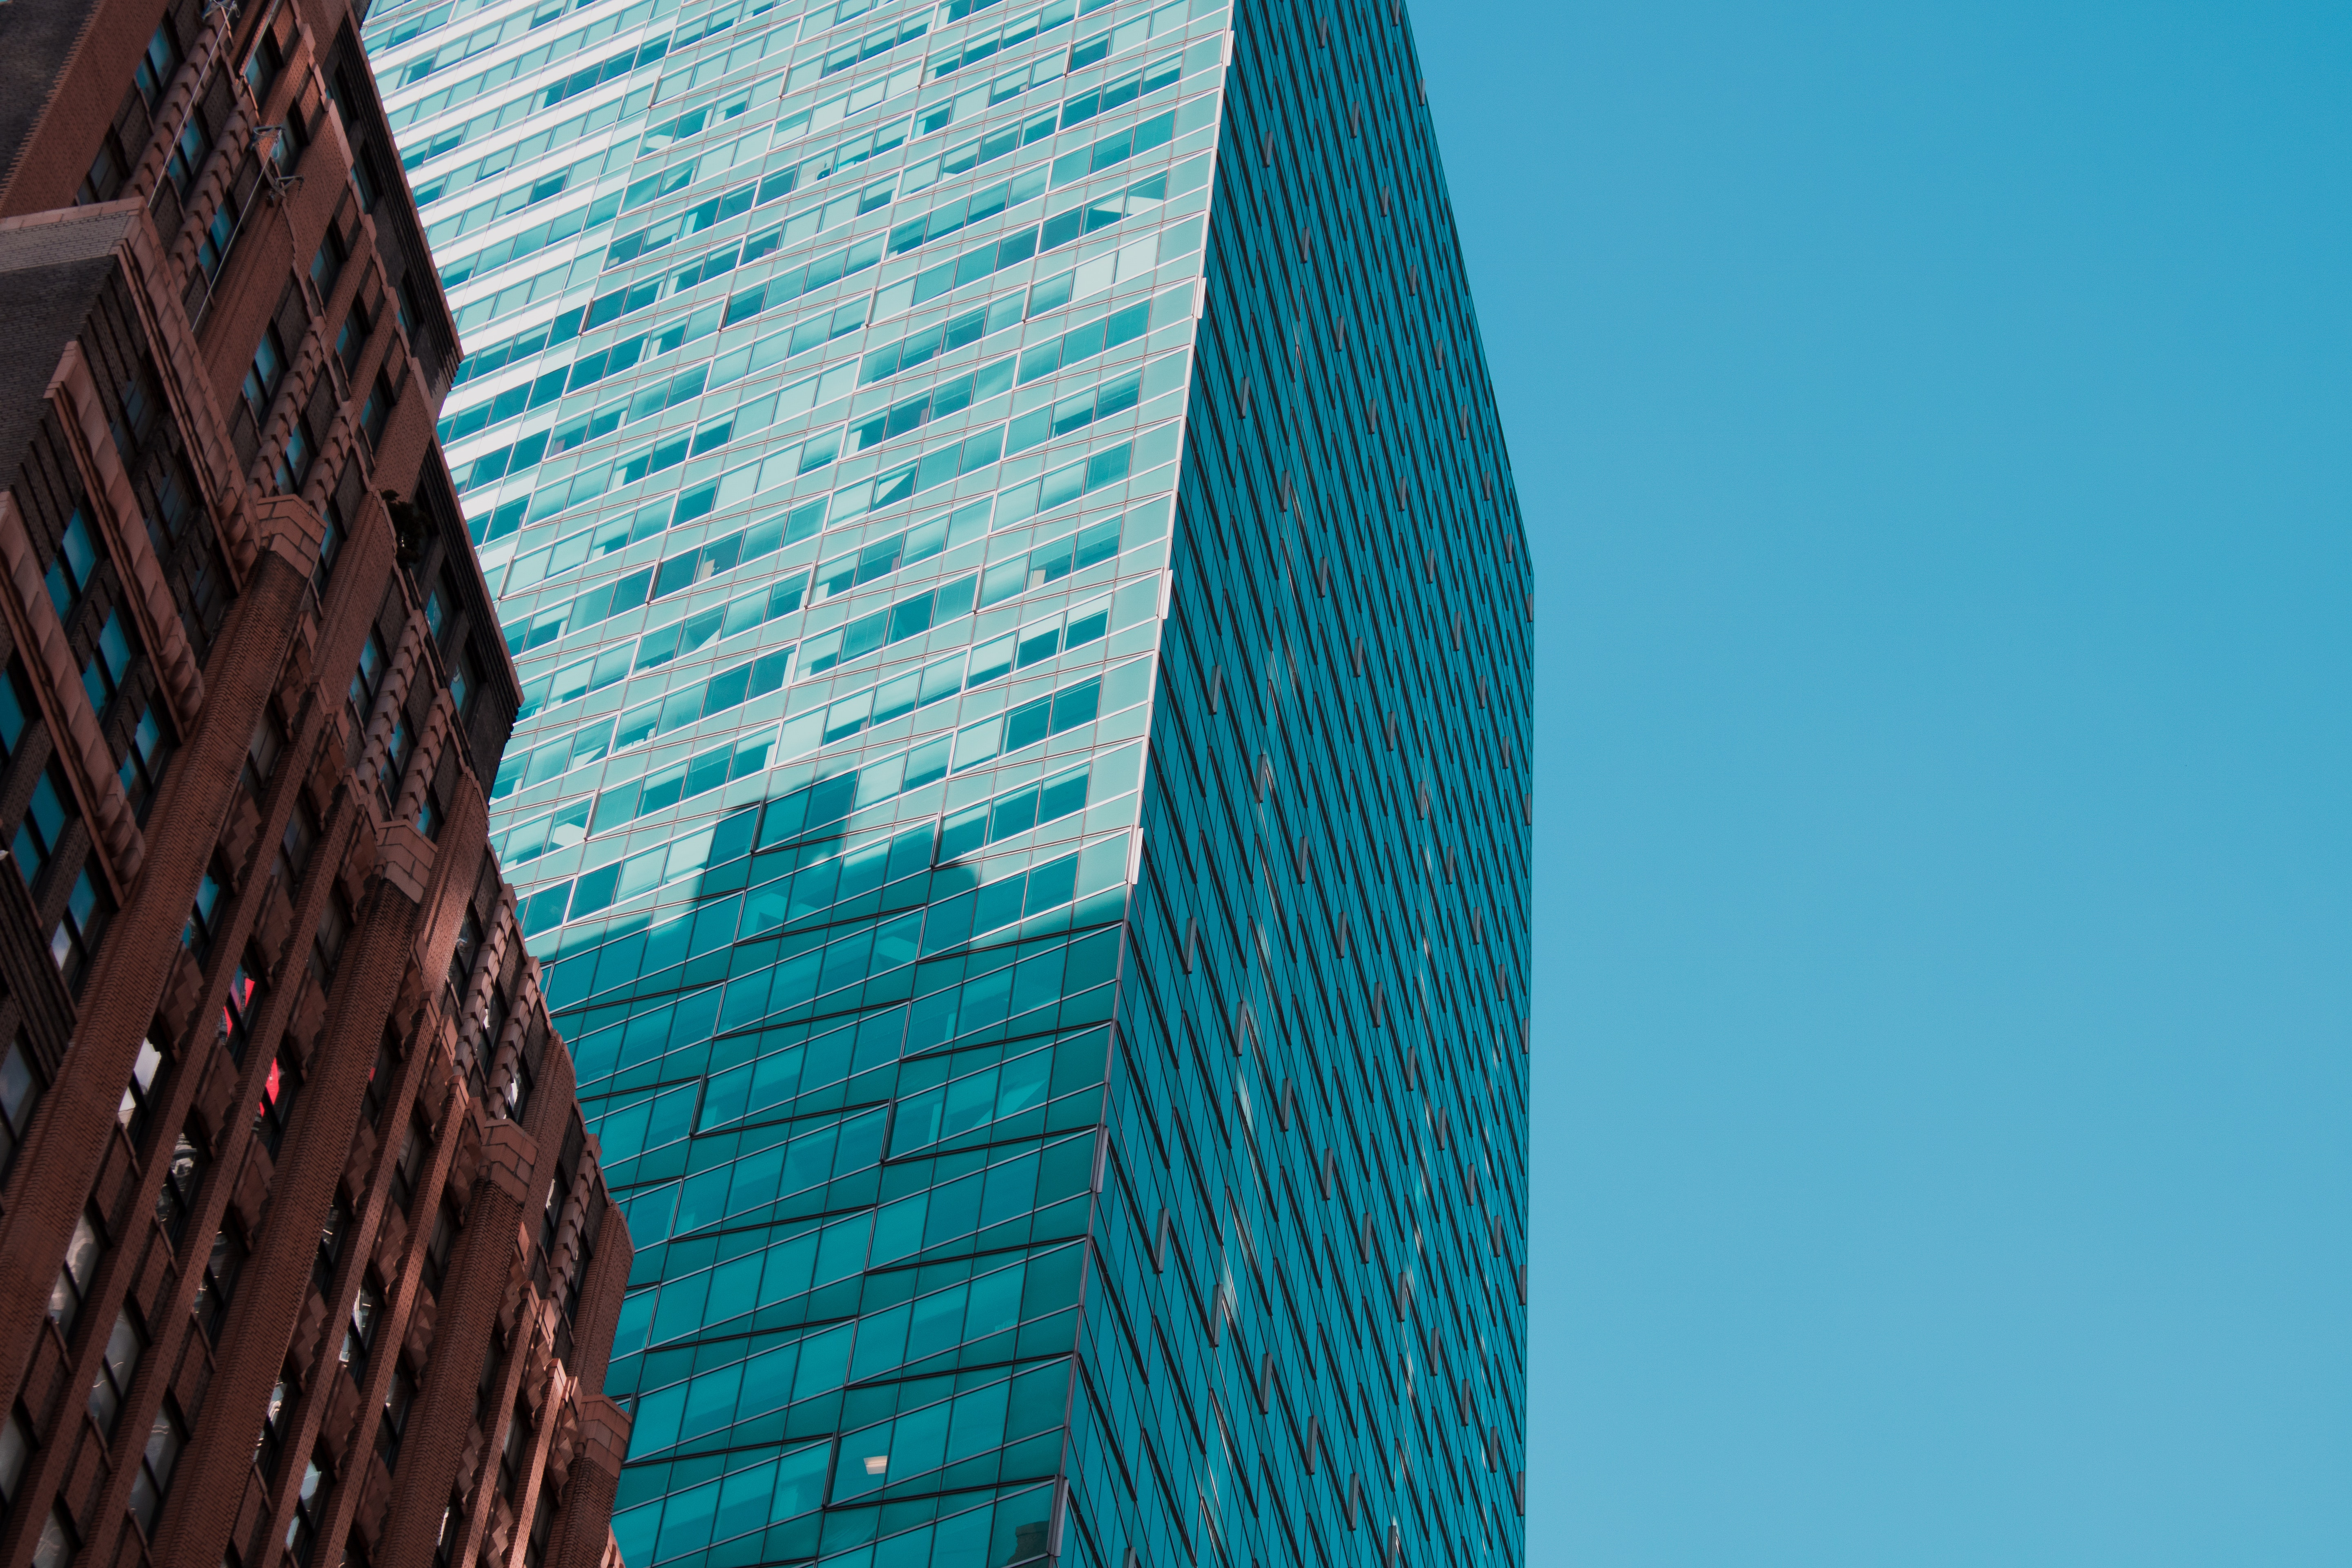 Low-angle Photograph of High Rise Building, Architectural design, Modern, Urban, Tower, HQ Photo